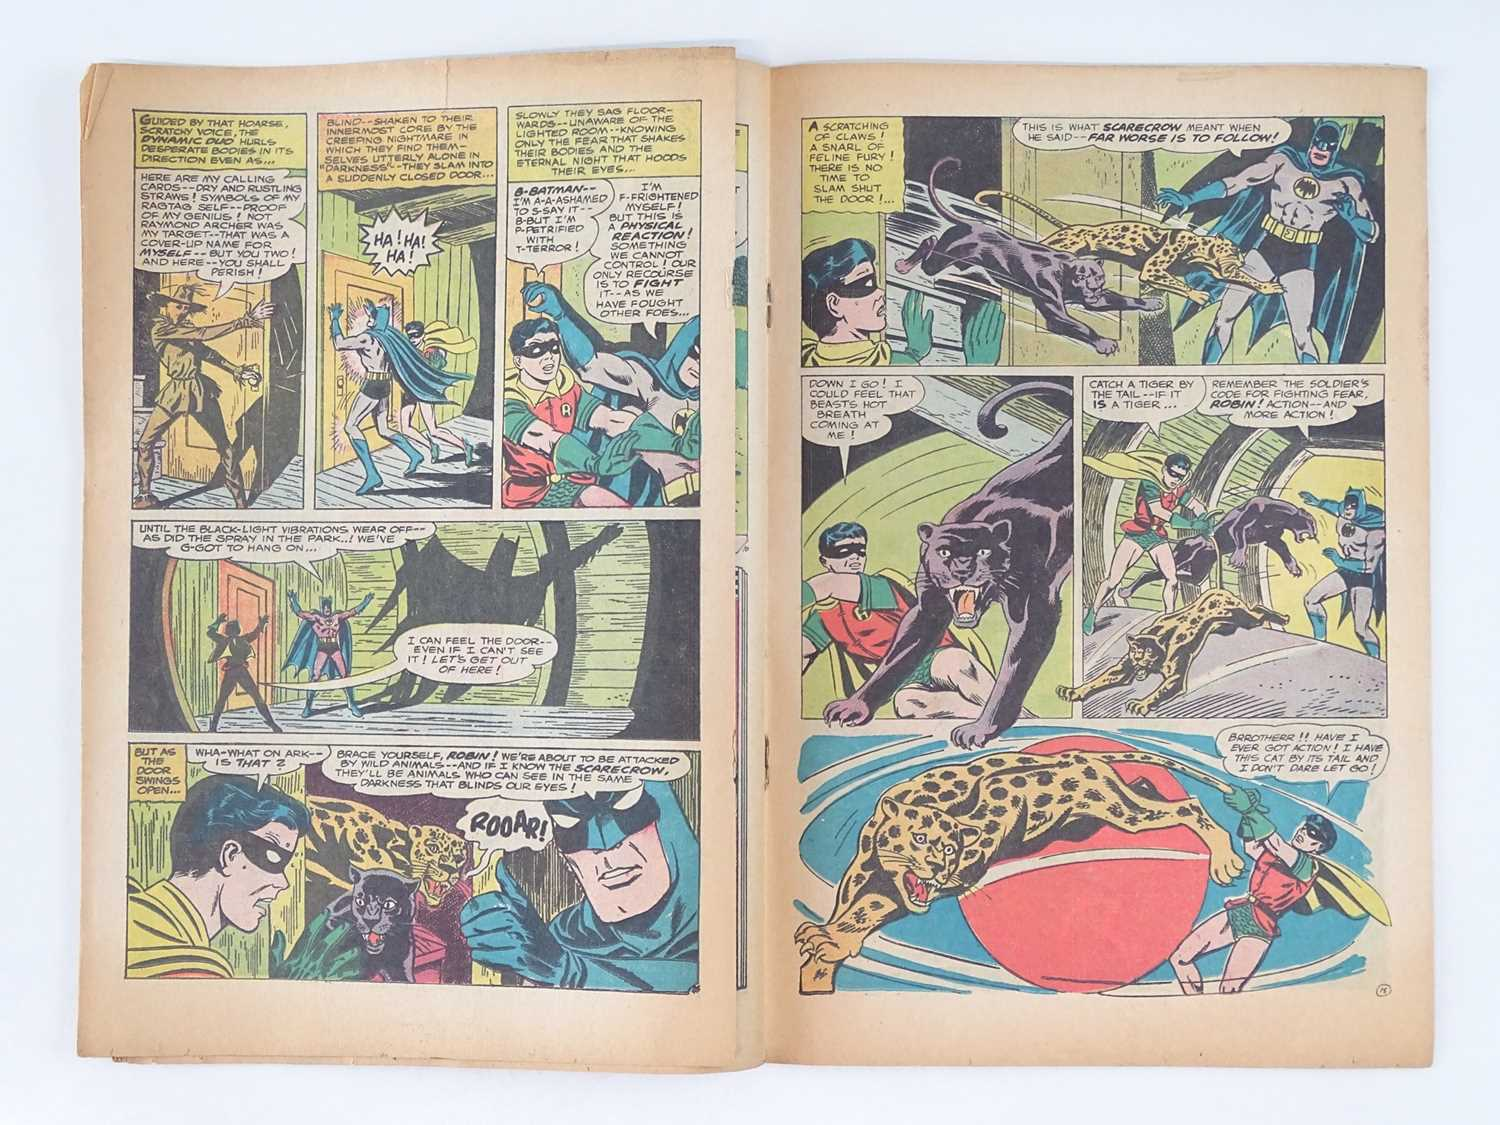 BATMAN #189 - (1967 - DC - UK Cover Price) - KEY Book - First Silver Age appearance of the Scarecrow - Image 8 of 10